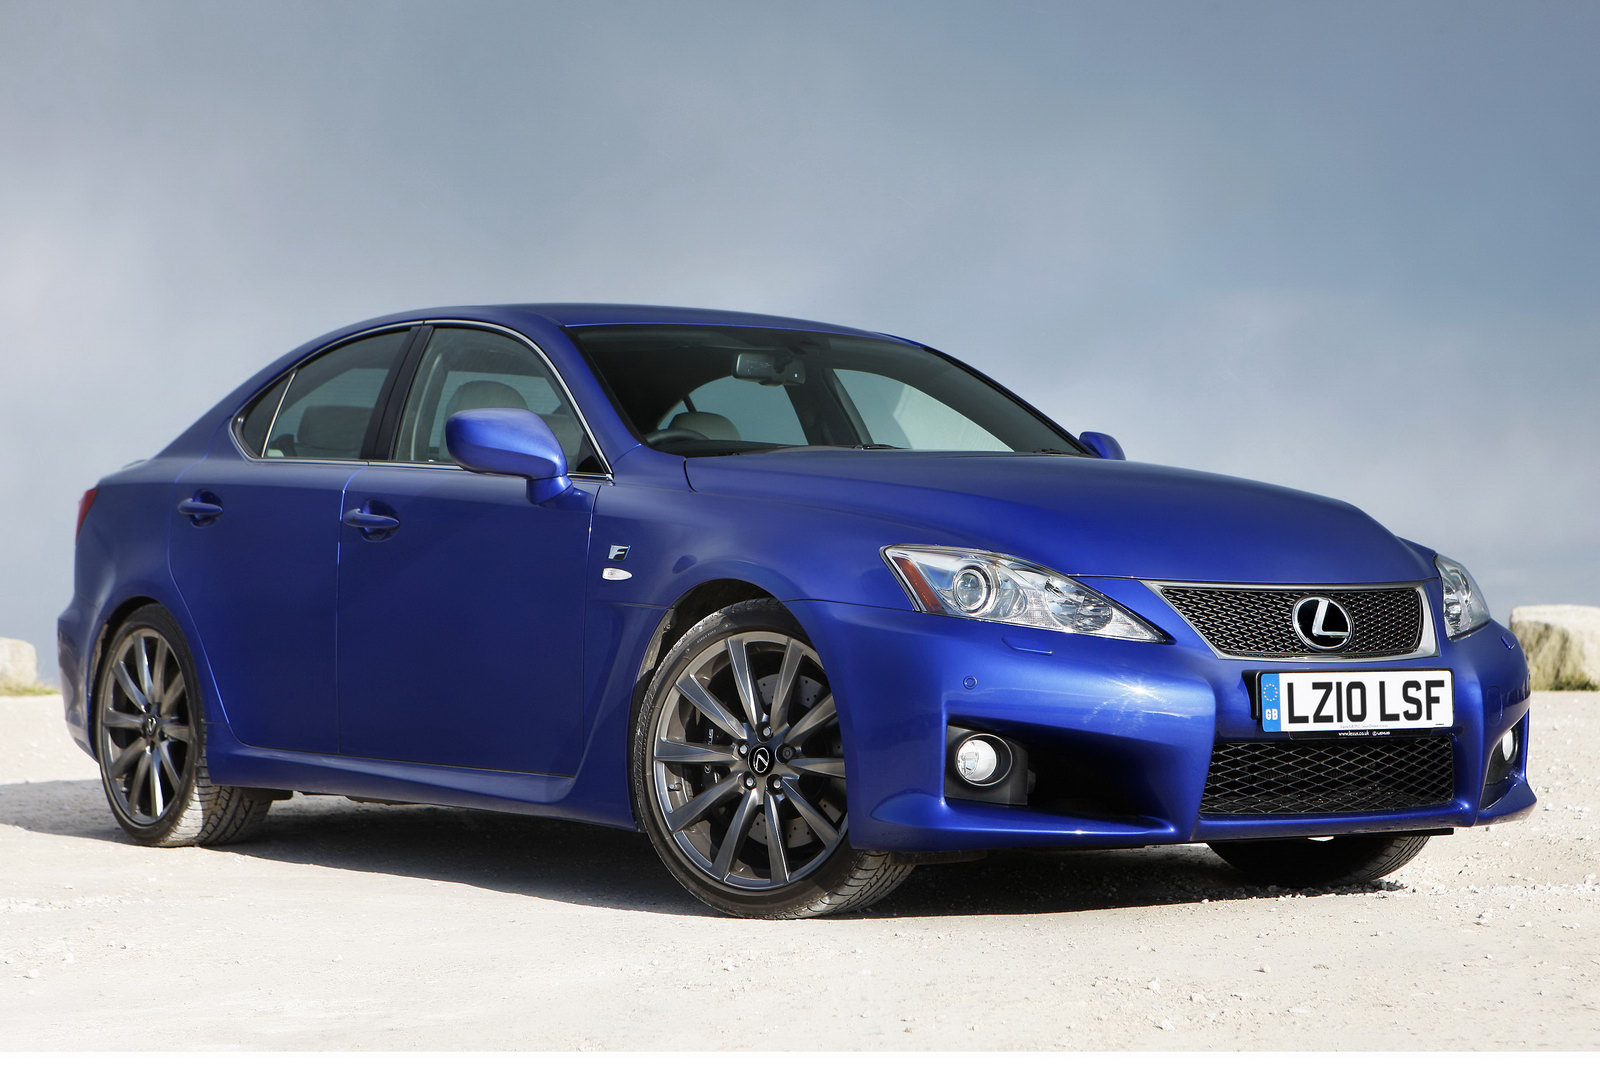 2011 Lexus IS F Car 2011 Lexus    Features, Price, Photos